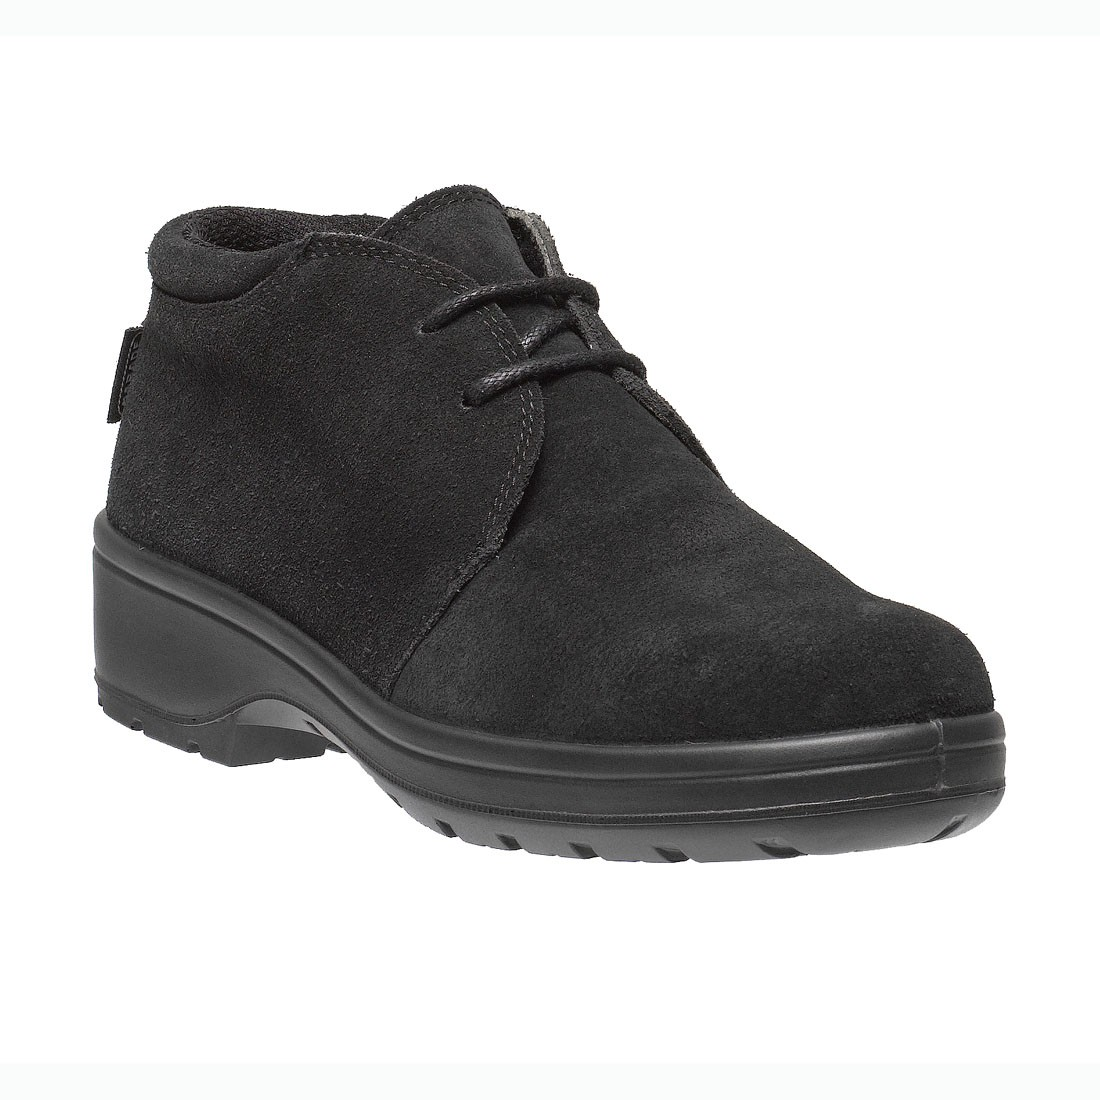 Catering Shoes Black